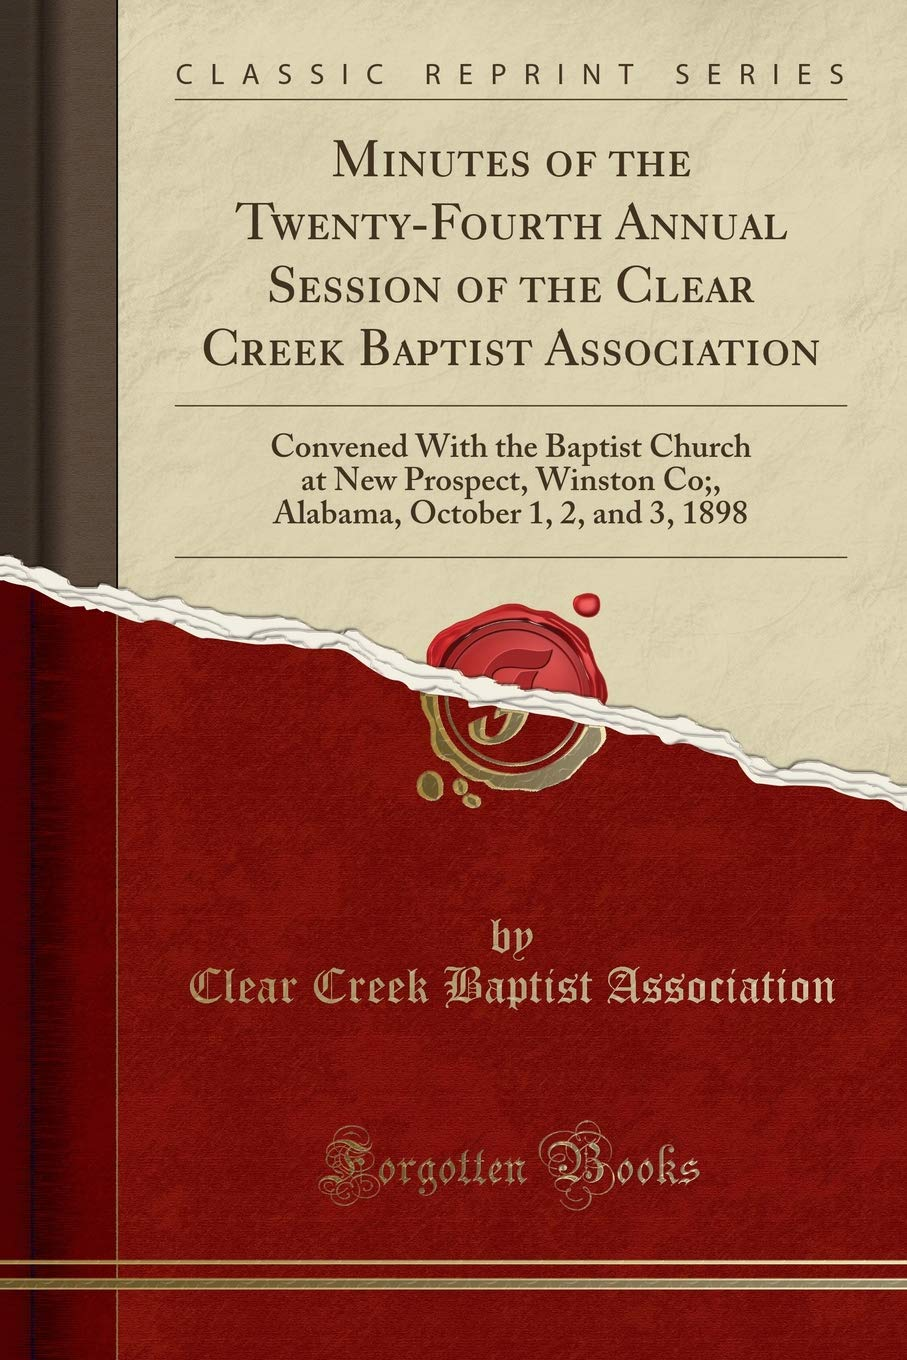 Download Minutes of the Twenty-Fourth Annual Session of the Clear Creek Baptist Association: Convened with the Baptist Church at New Prospect, Winston Co;, Alabama, October 1, 2, and 3, 1898 (Classic Reprint) pdf epub